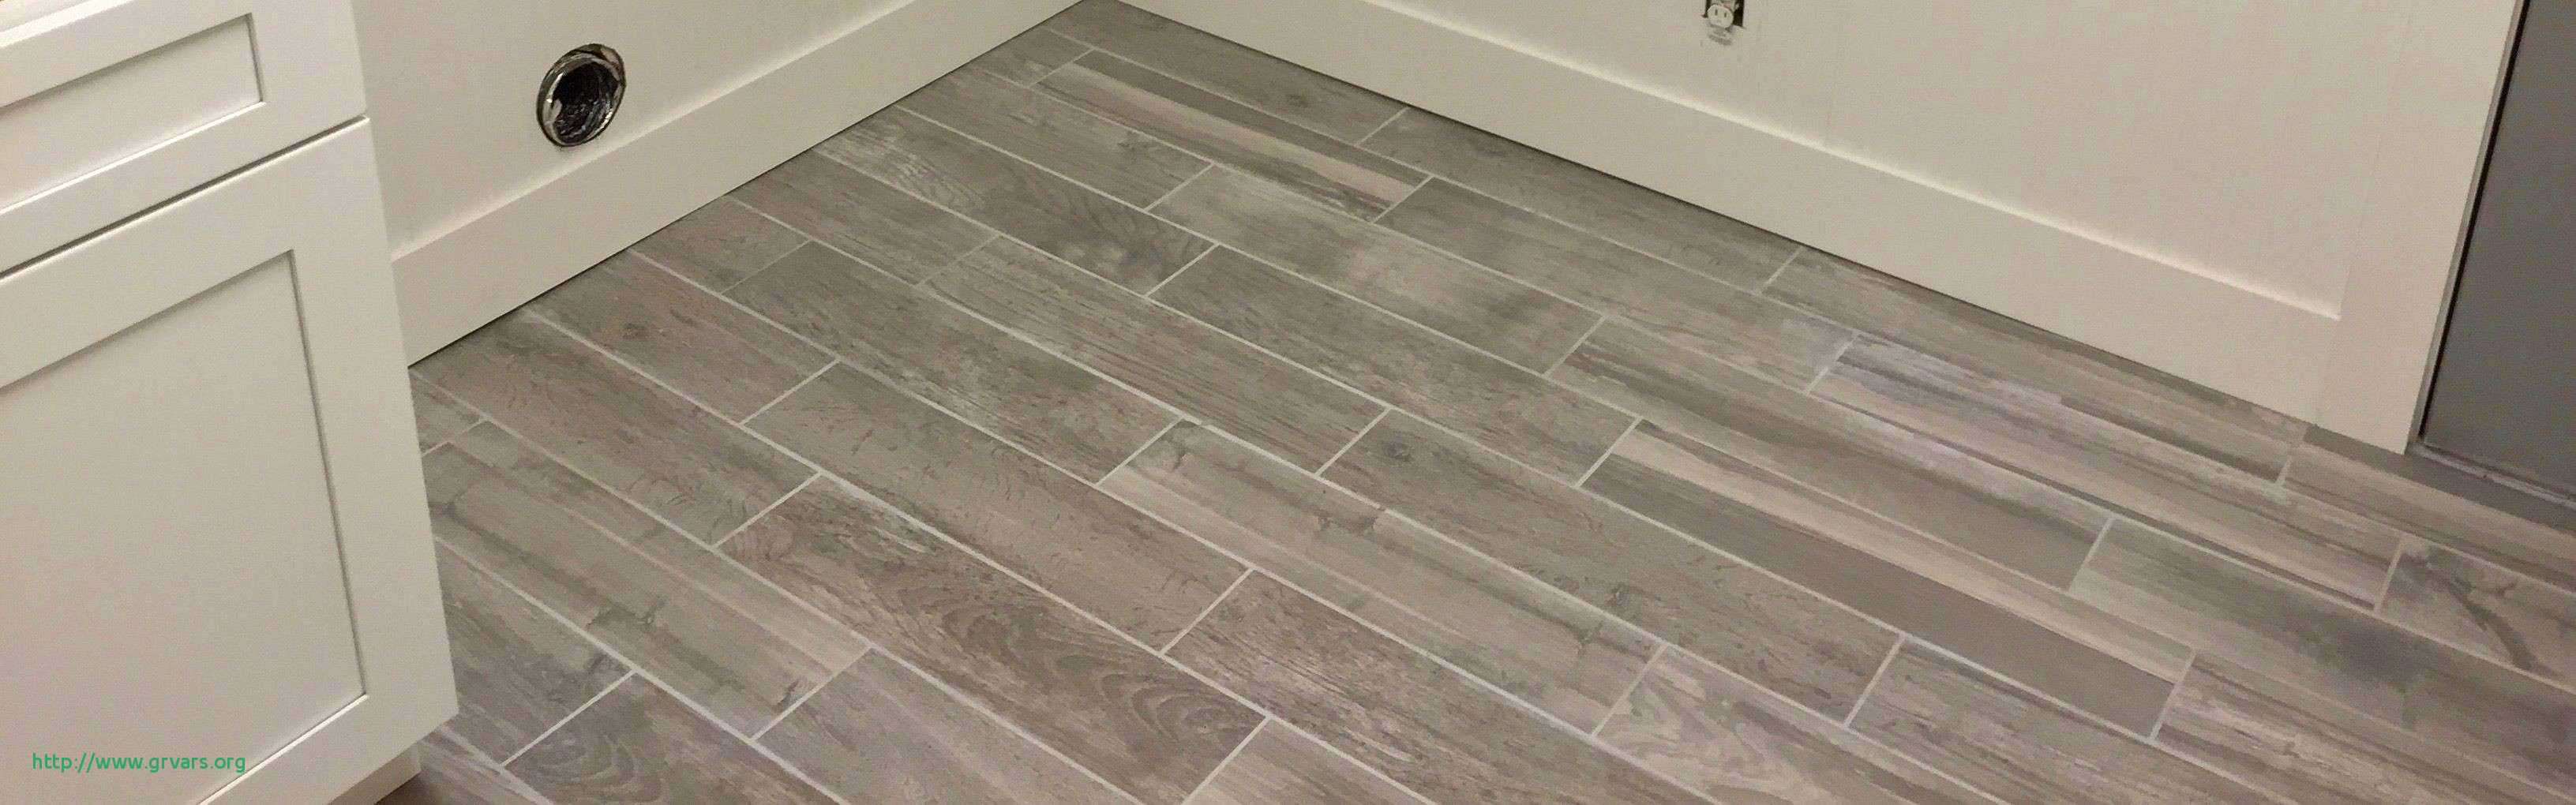 typical cost to install hardwood floors of 16 beau average cost of installing tile flooring ideas blog intended for average cost of installing tile flooring meilleur de tile installation cost